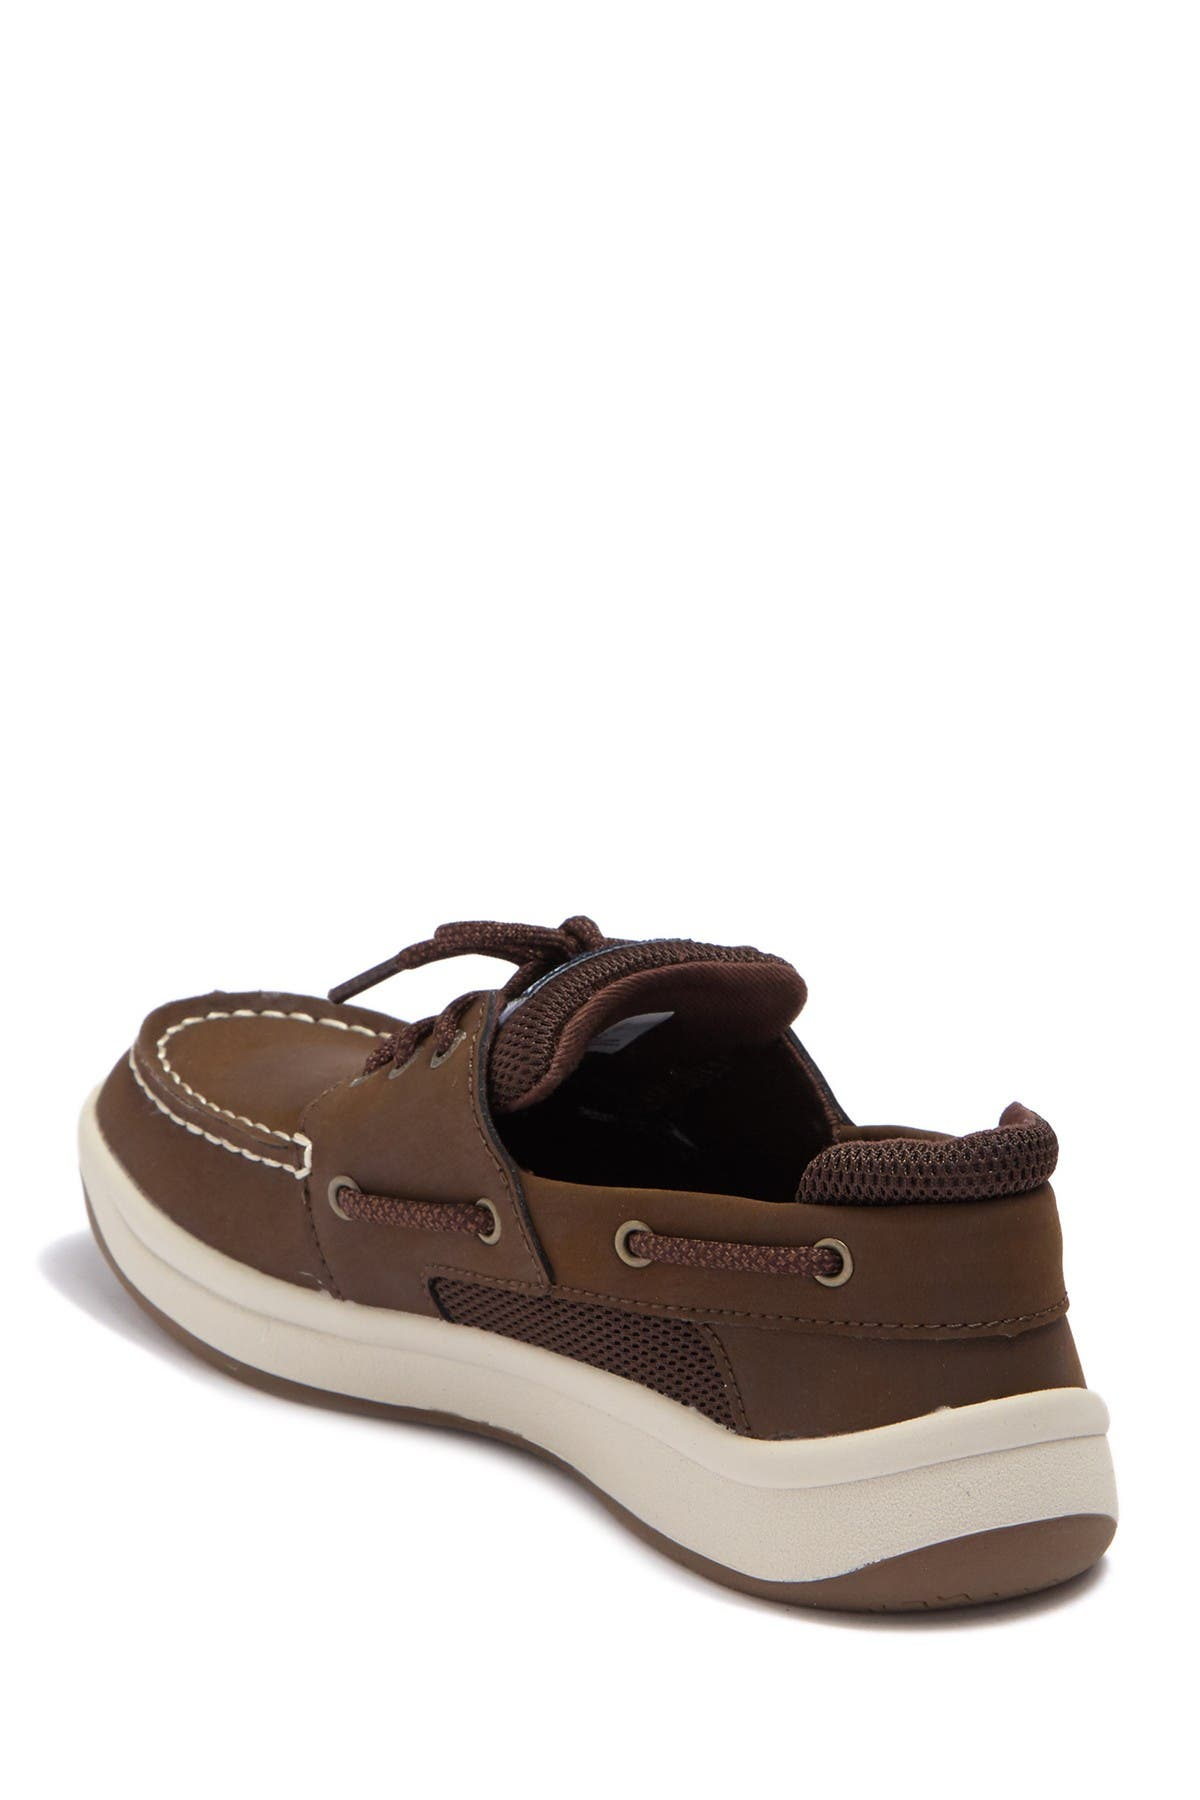 Sperry | Convoy Leather Boat Shoe